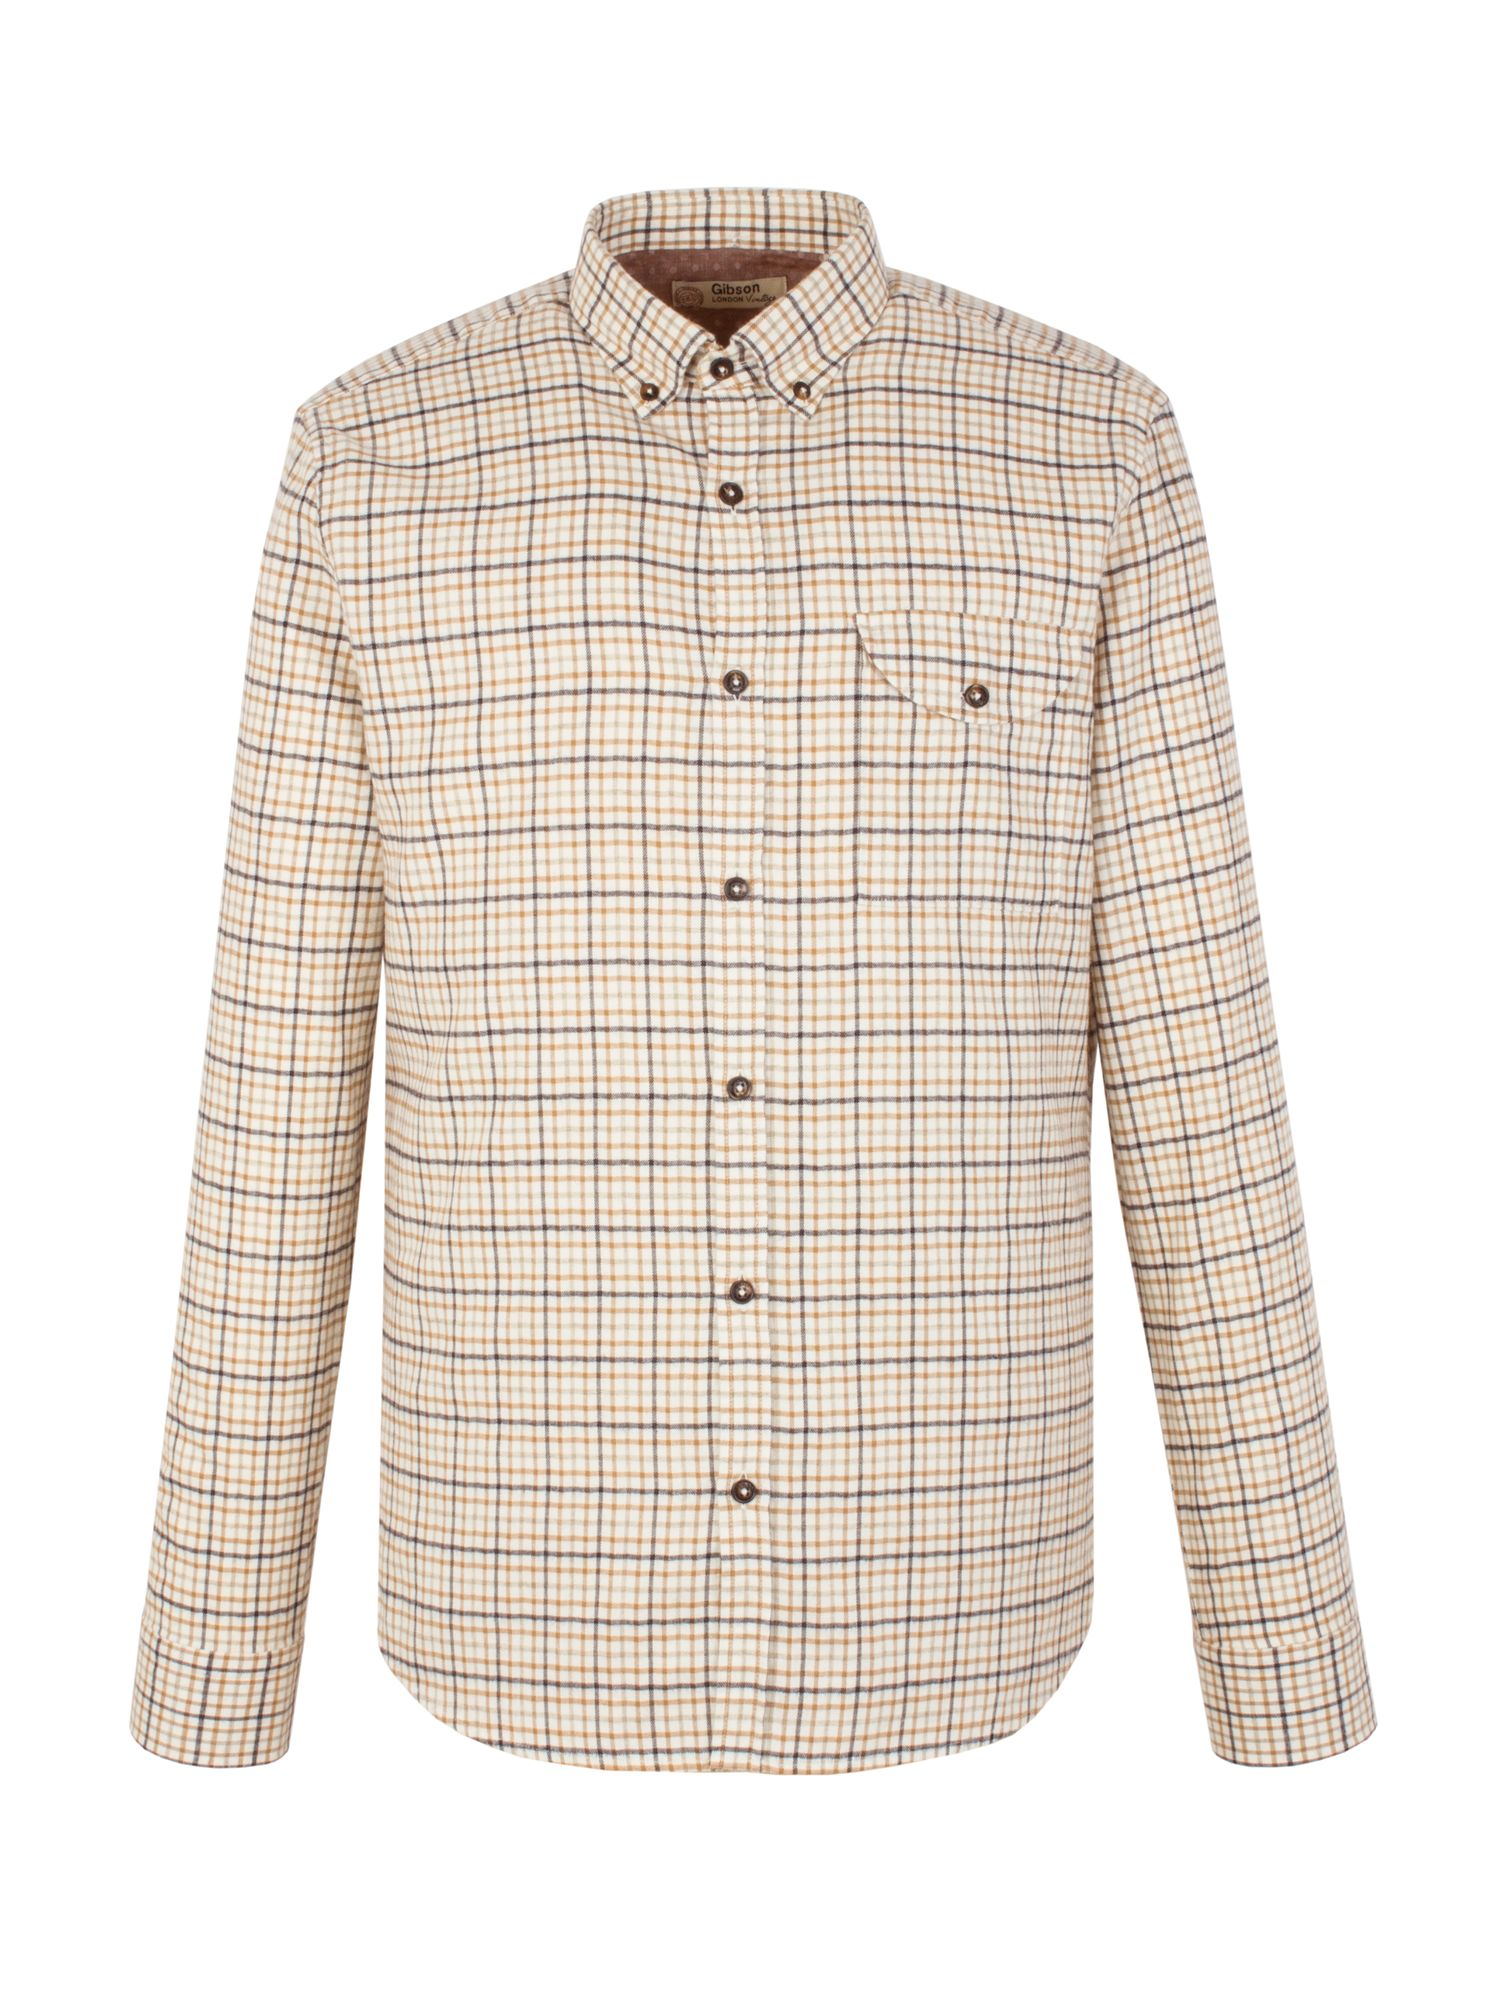 Mens Gibson Check Tailored Fit Long Sleeve Button Down Shirt $37.50 AT vintagedancer.com